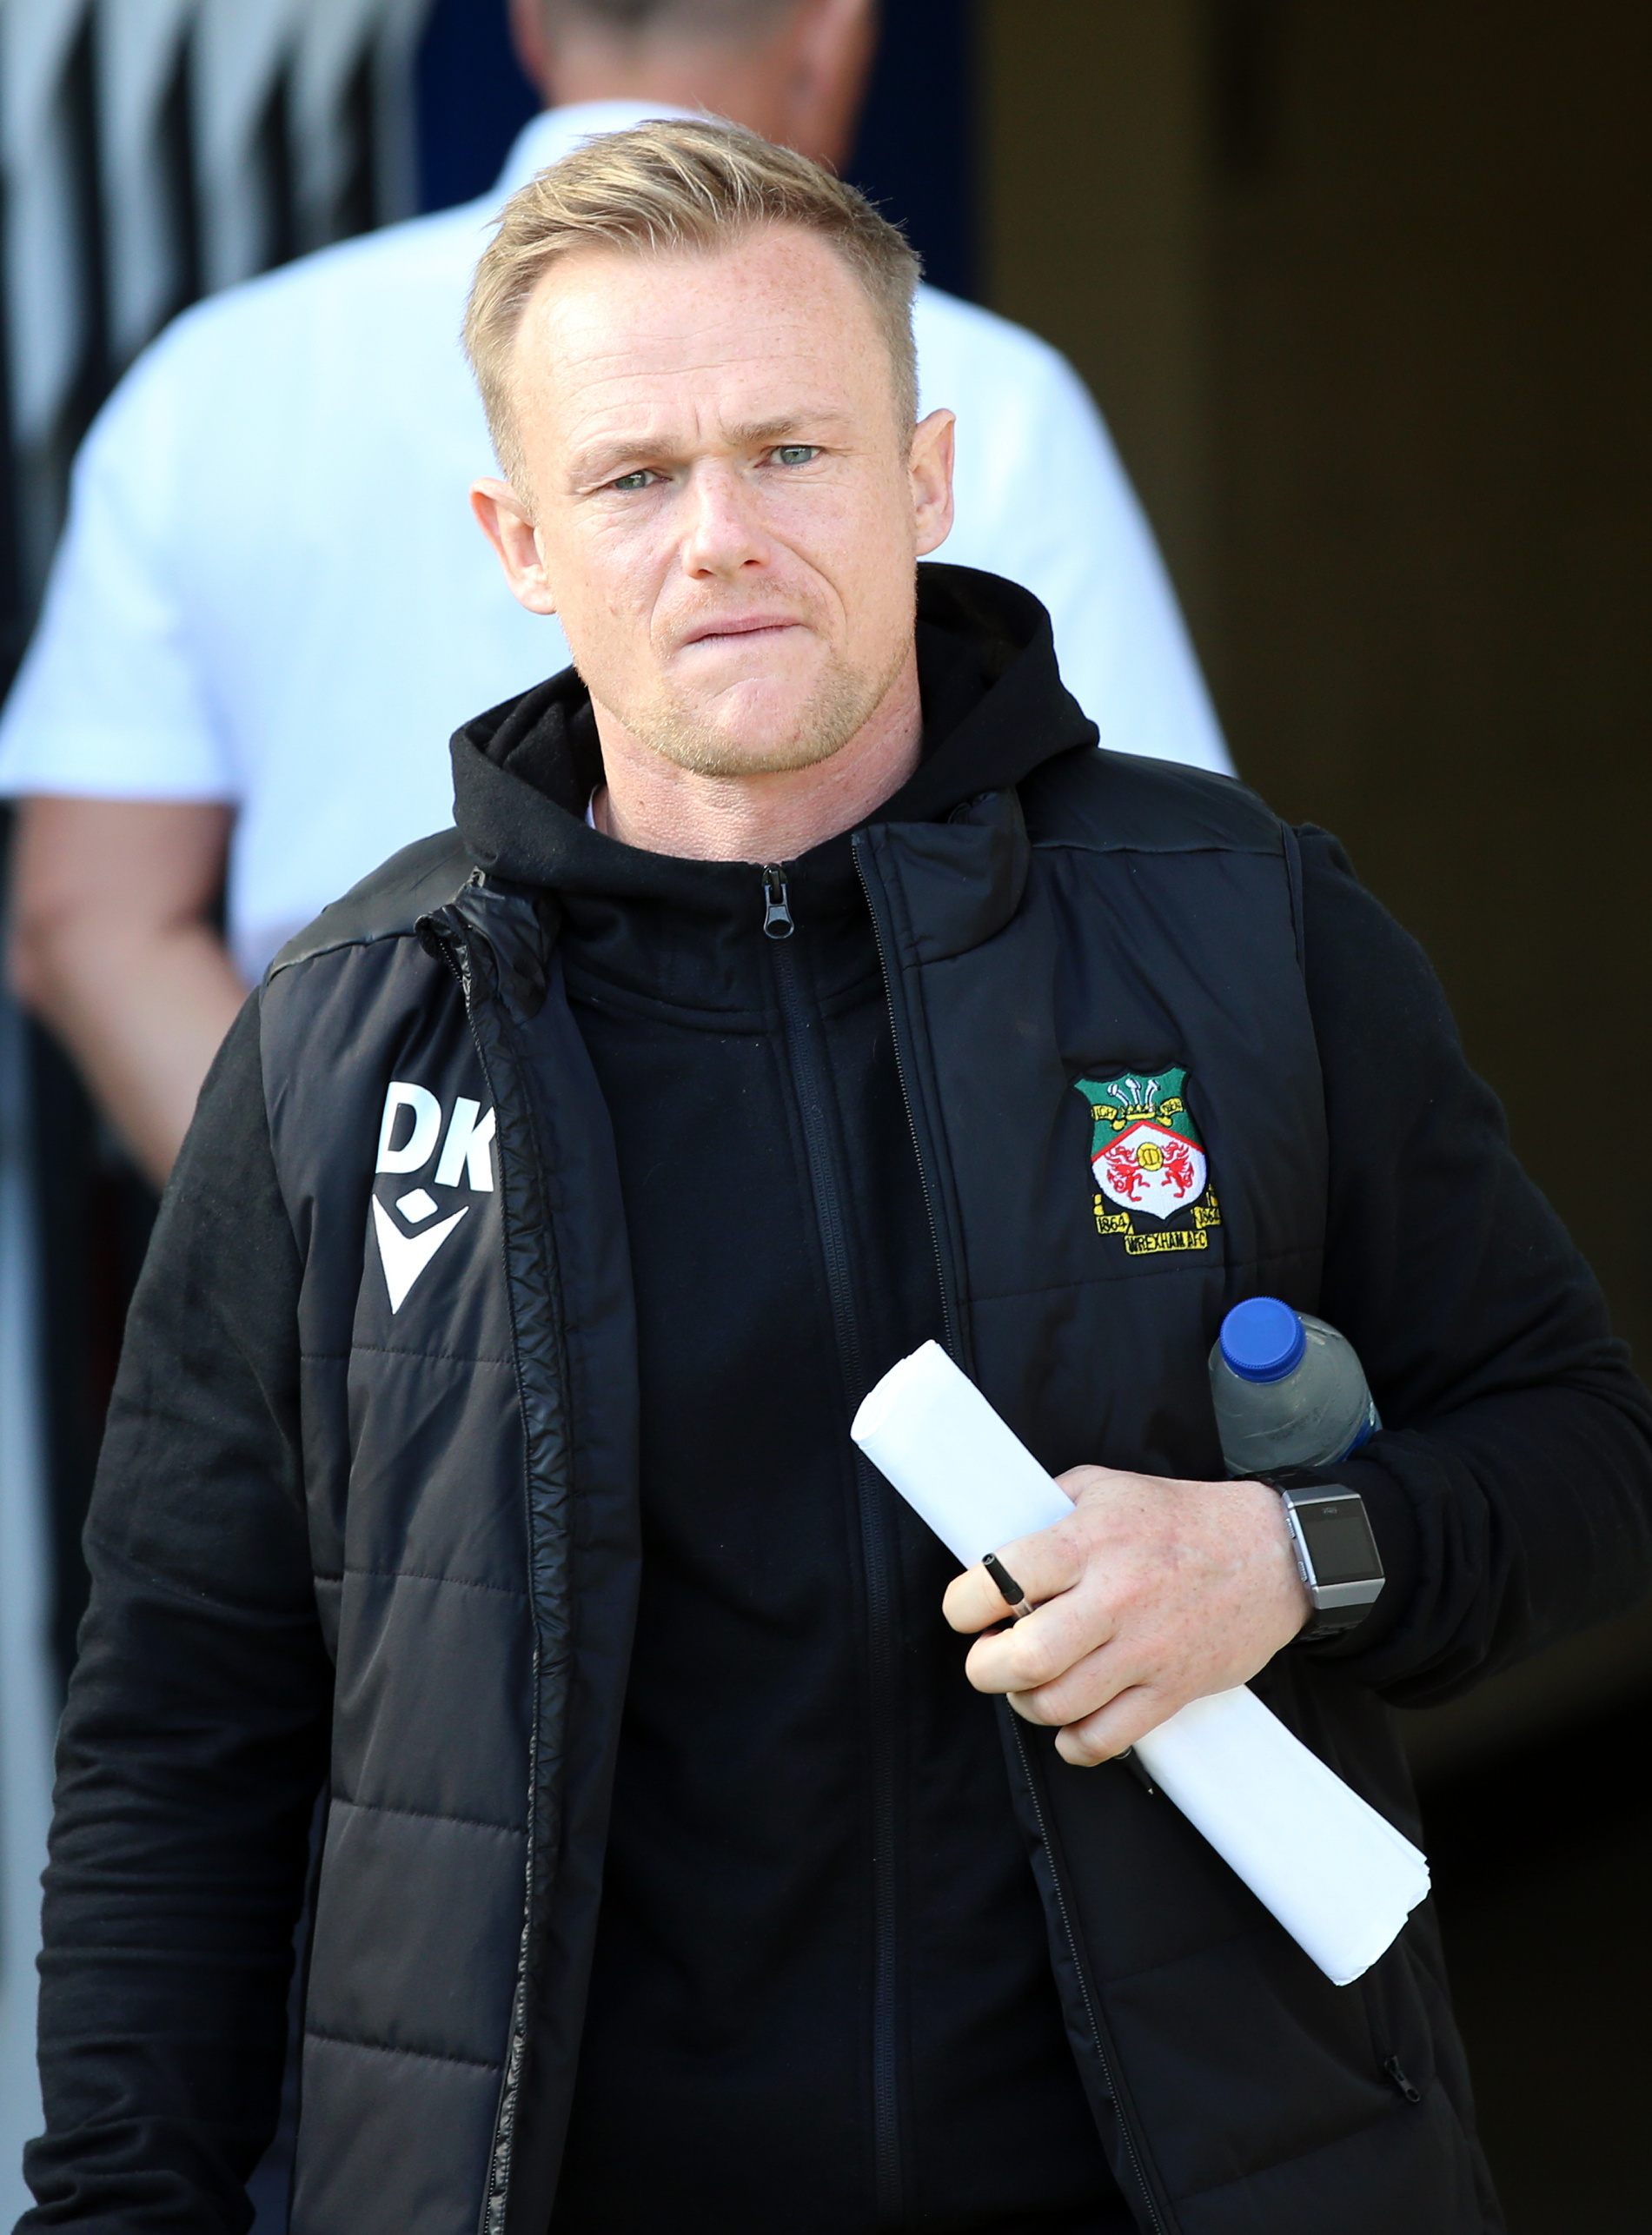 Wrexham AFC boss Dean Keates welcomes a free week ahead of FA Cup tie